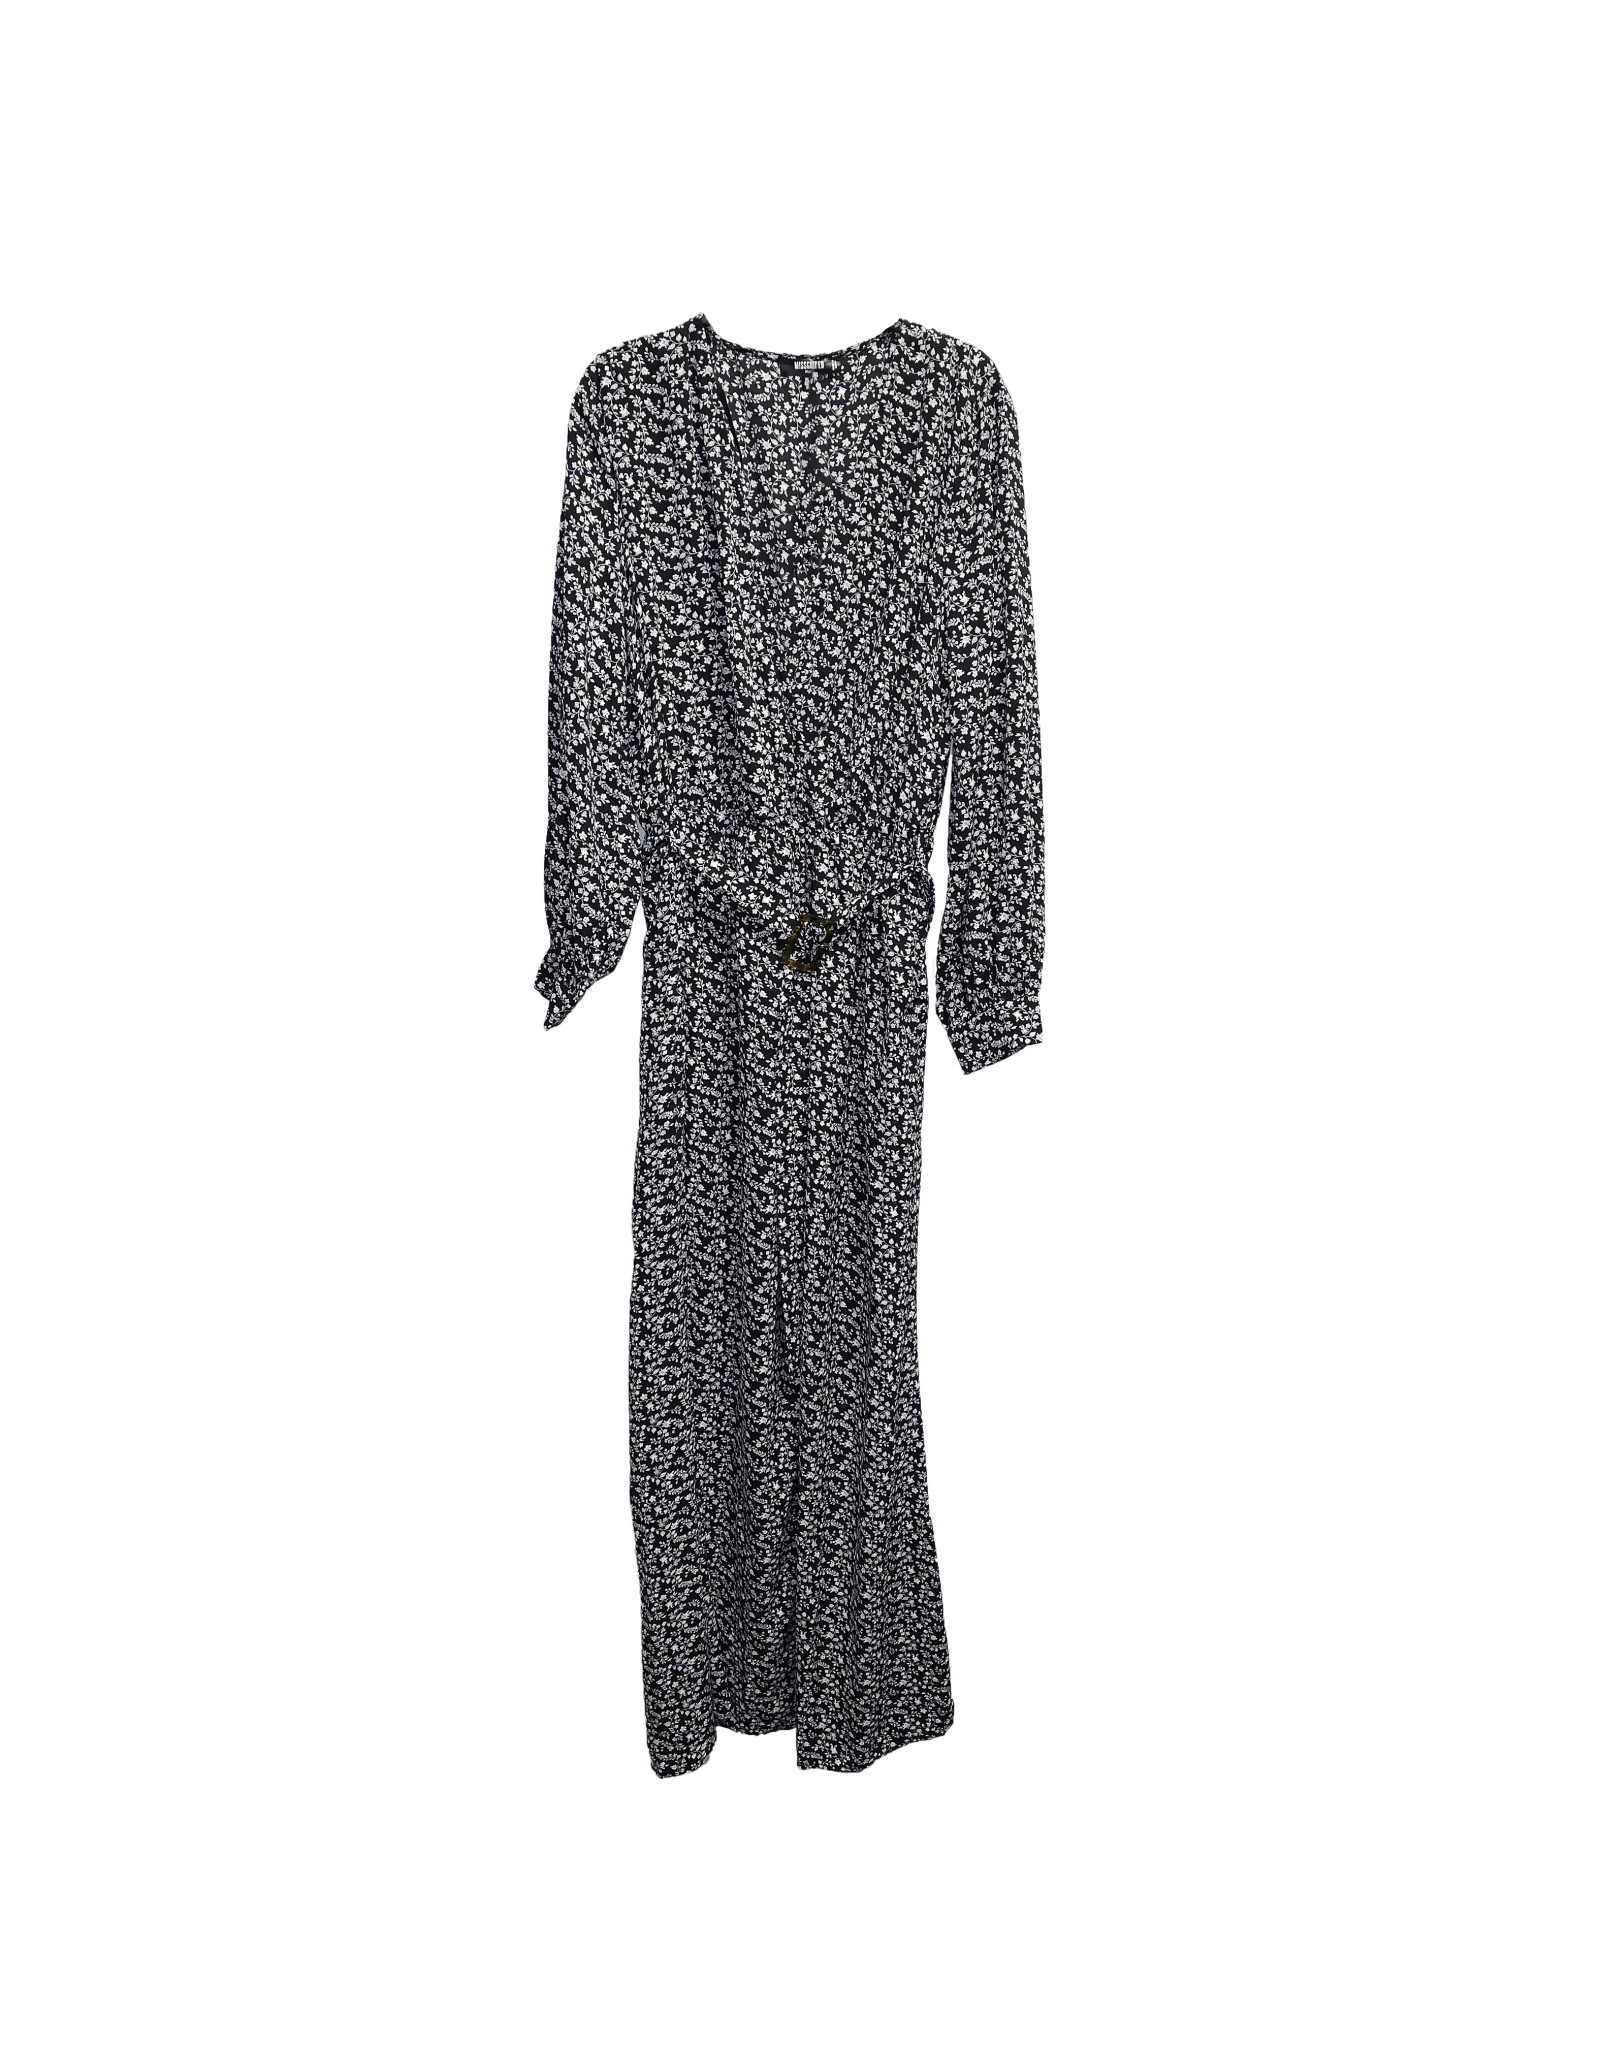 MISSGUIDED MISSGUIDED Plus Patterned Dress